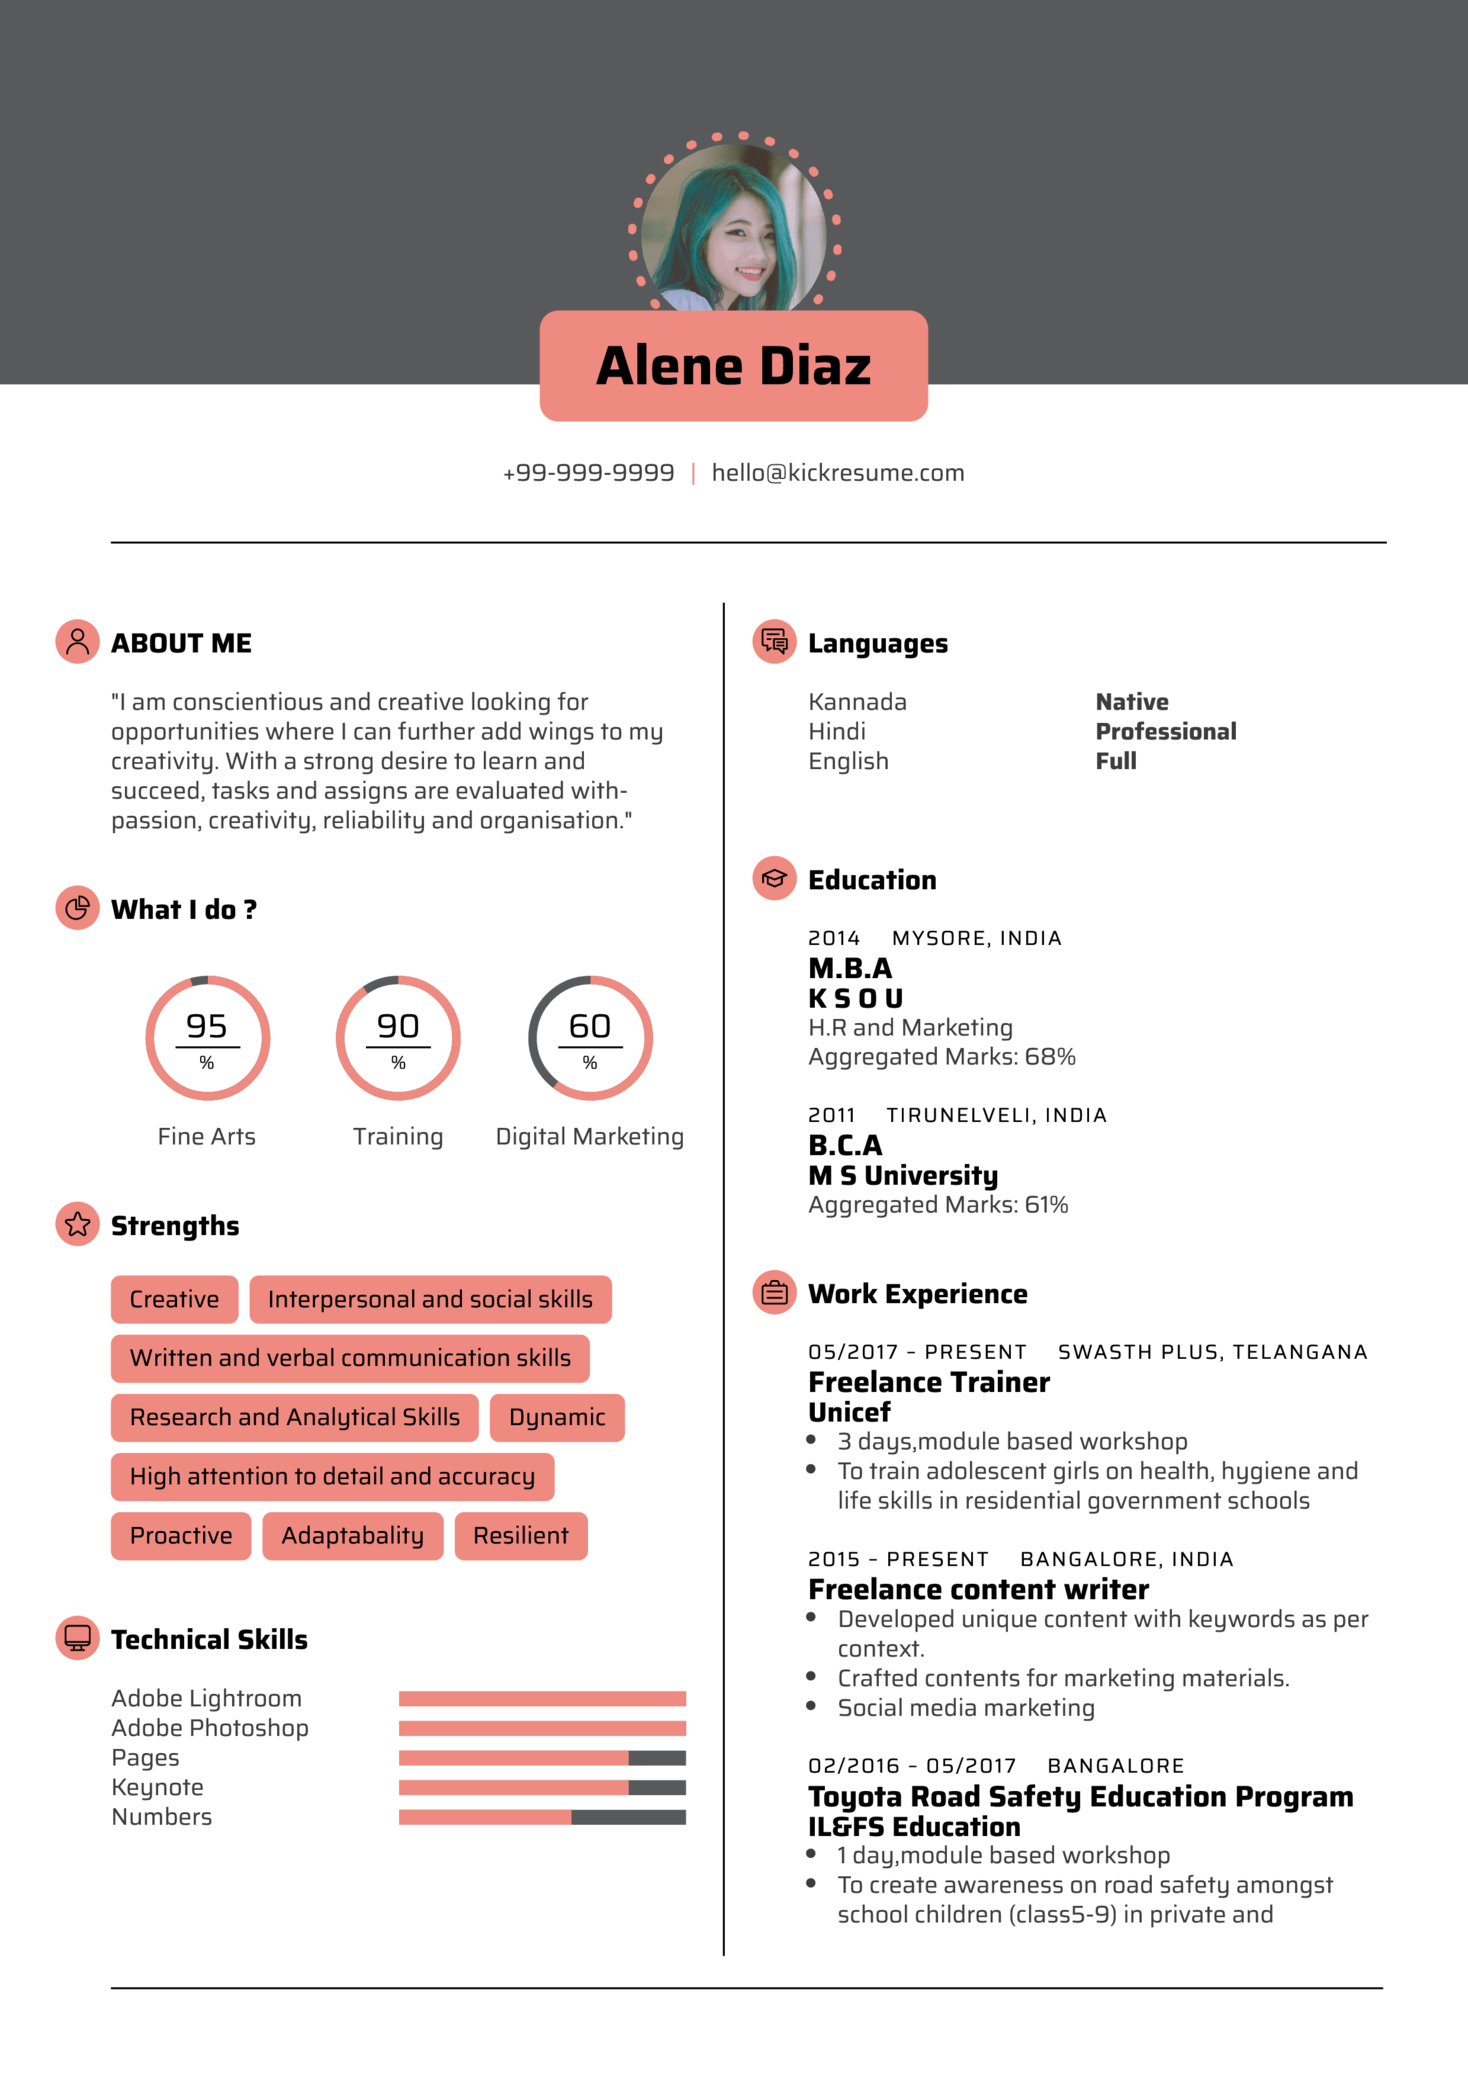 Unicef freelance trainer resume sample